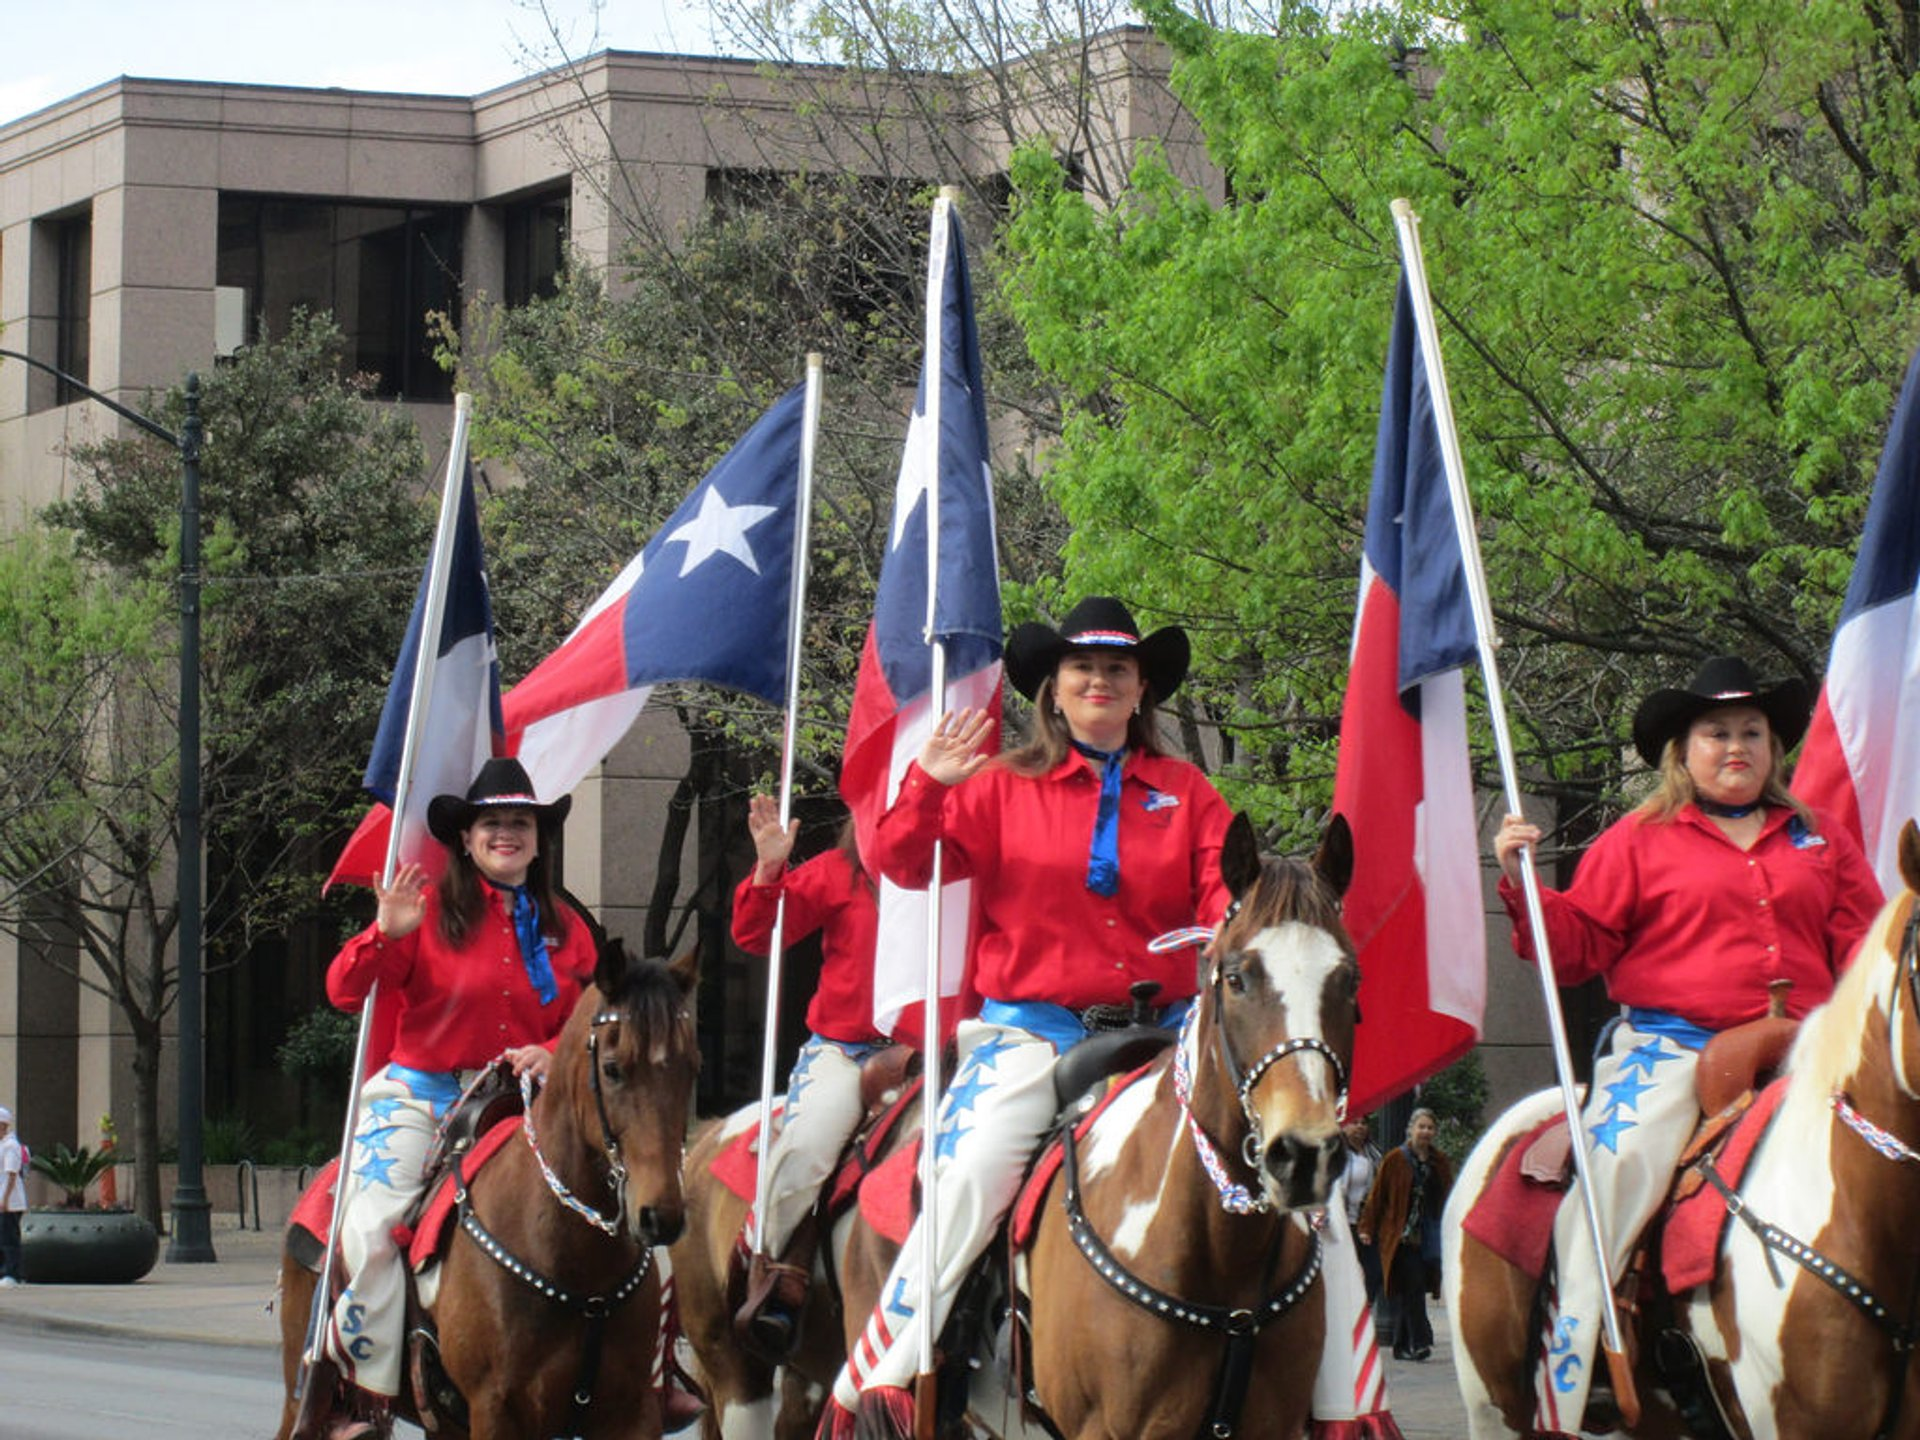 Texas Independence Day in Texas 2020 - Best Time